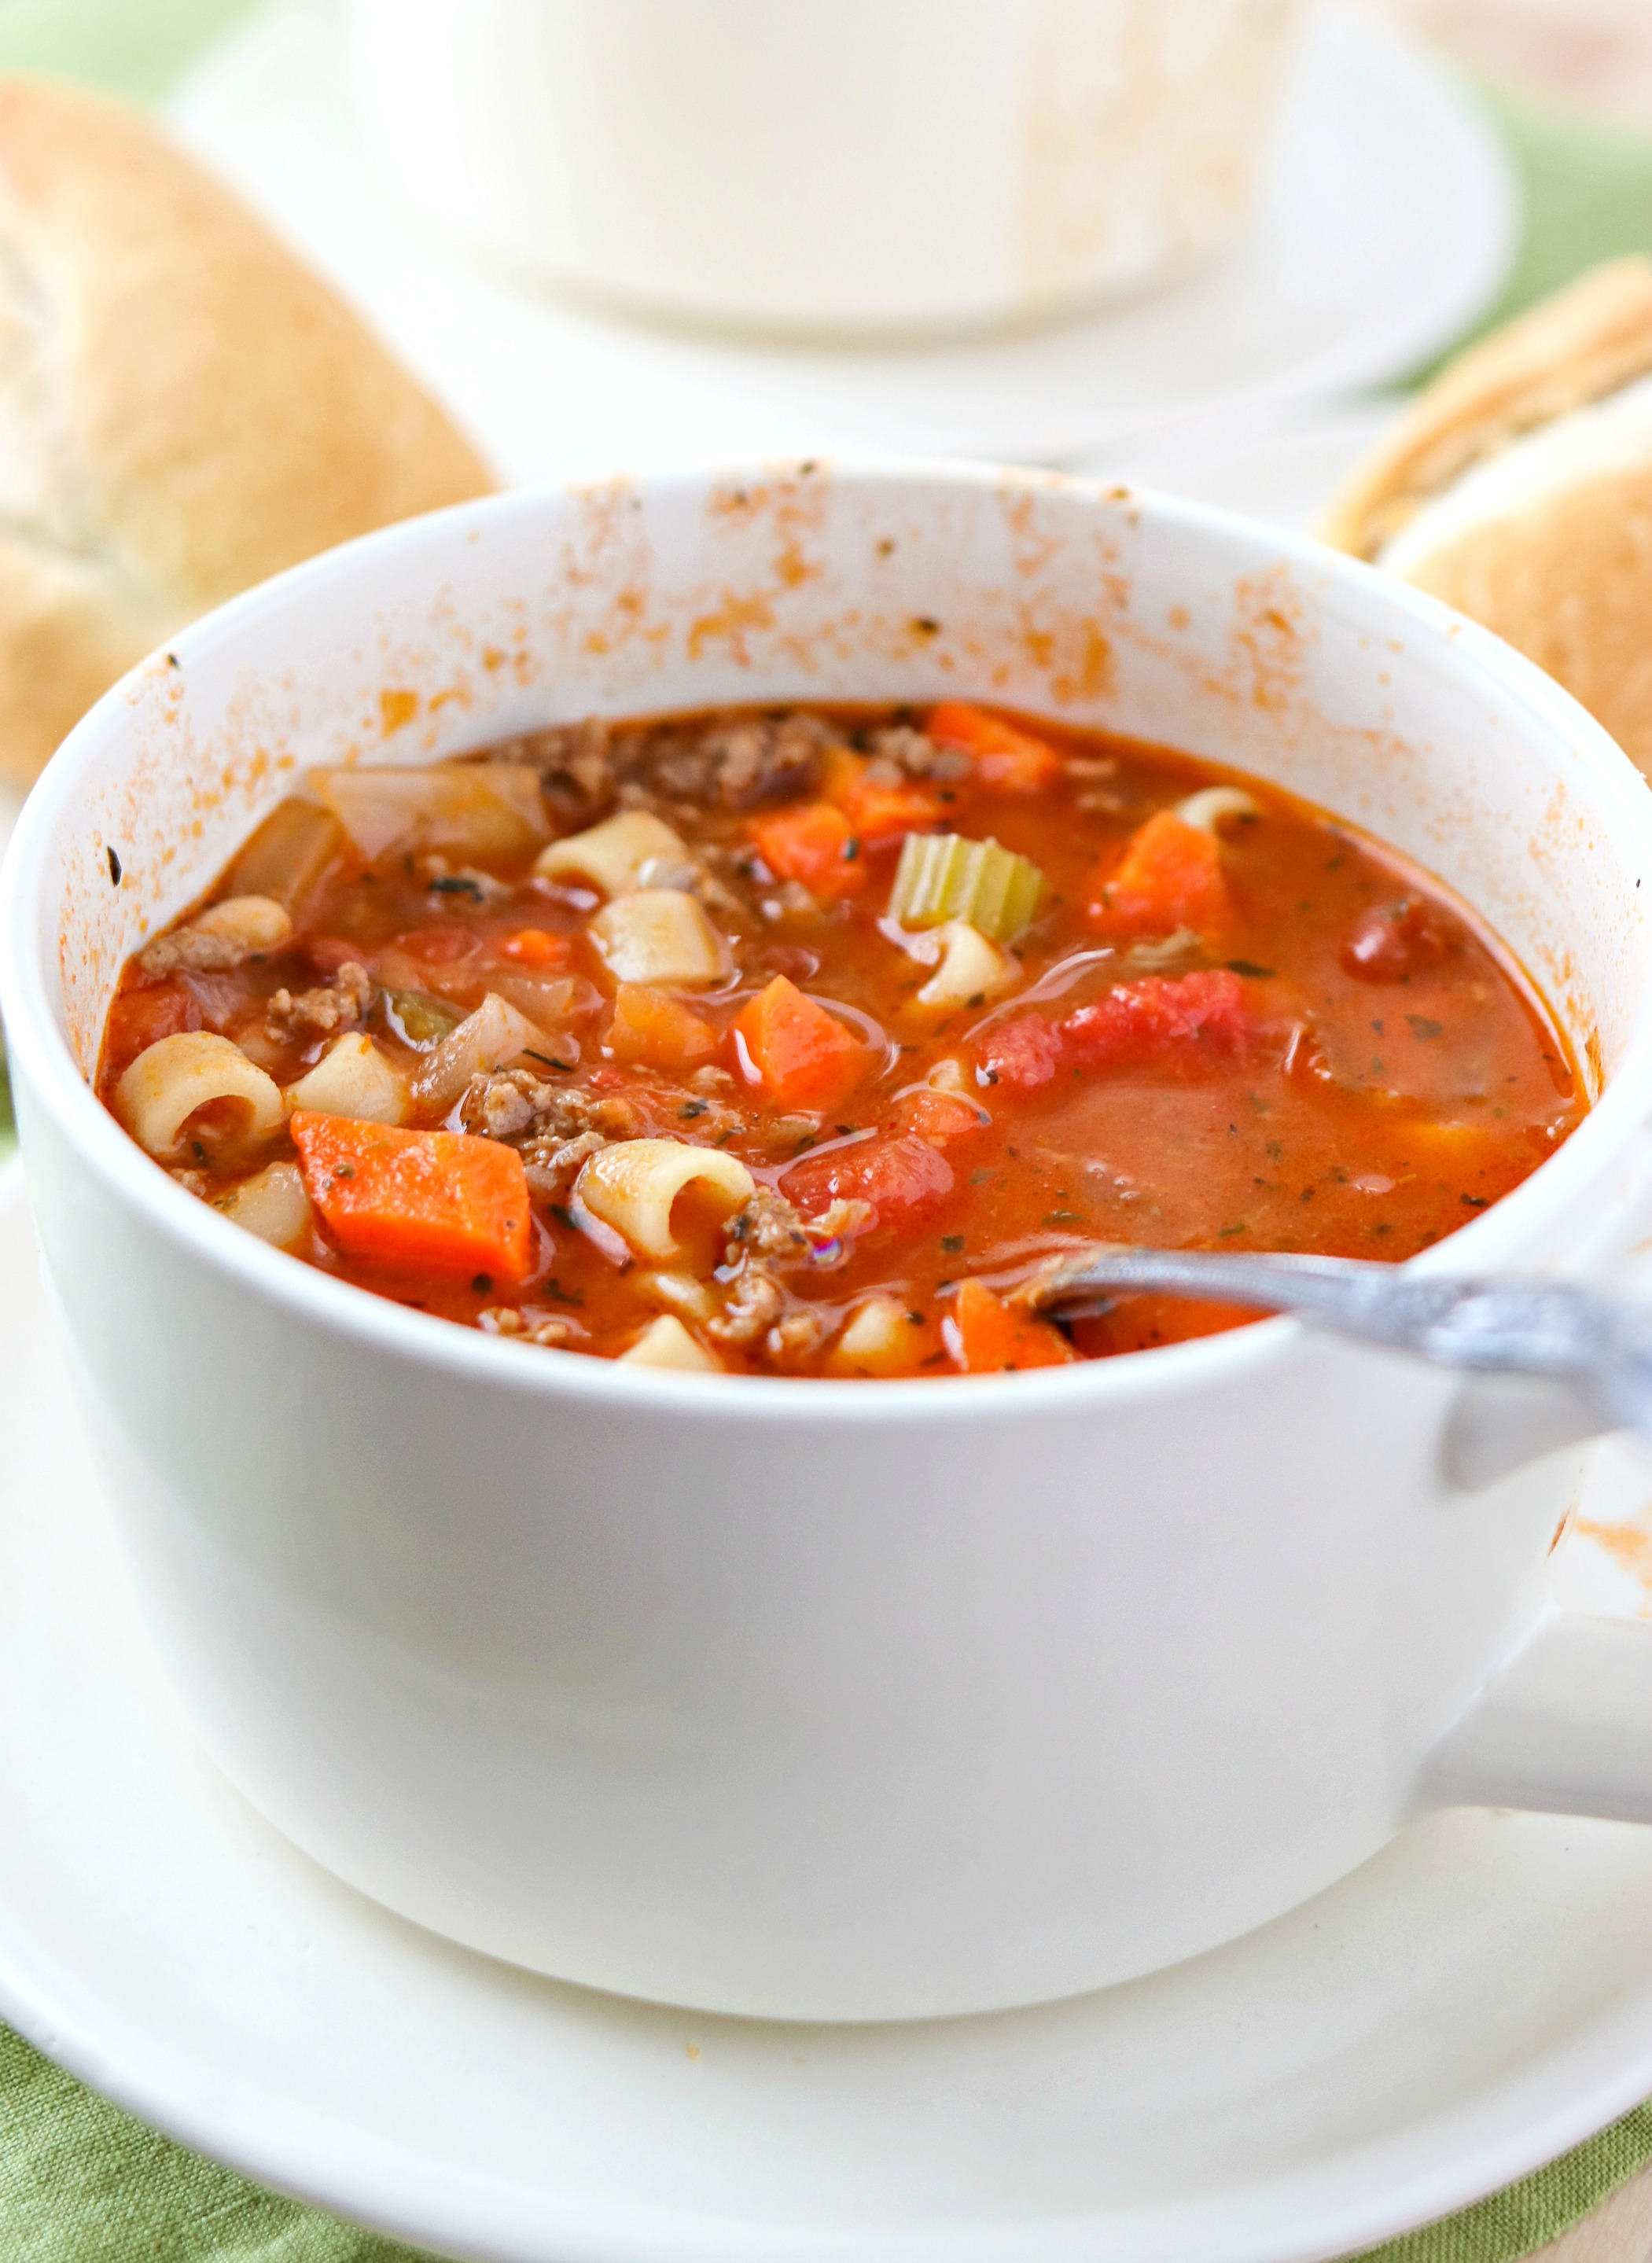 Bowl of Pasta e Fagioli Soup